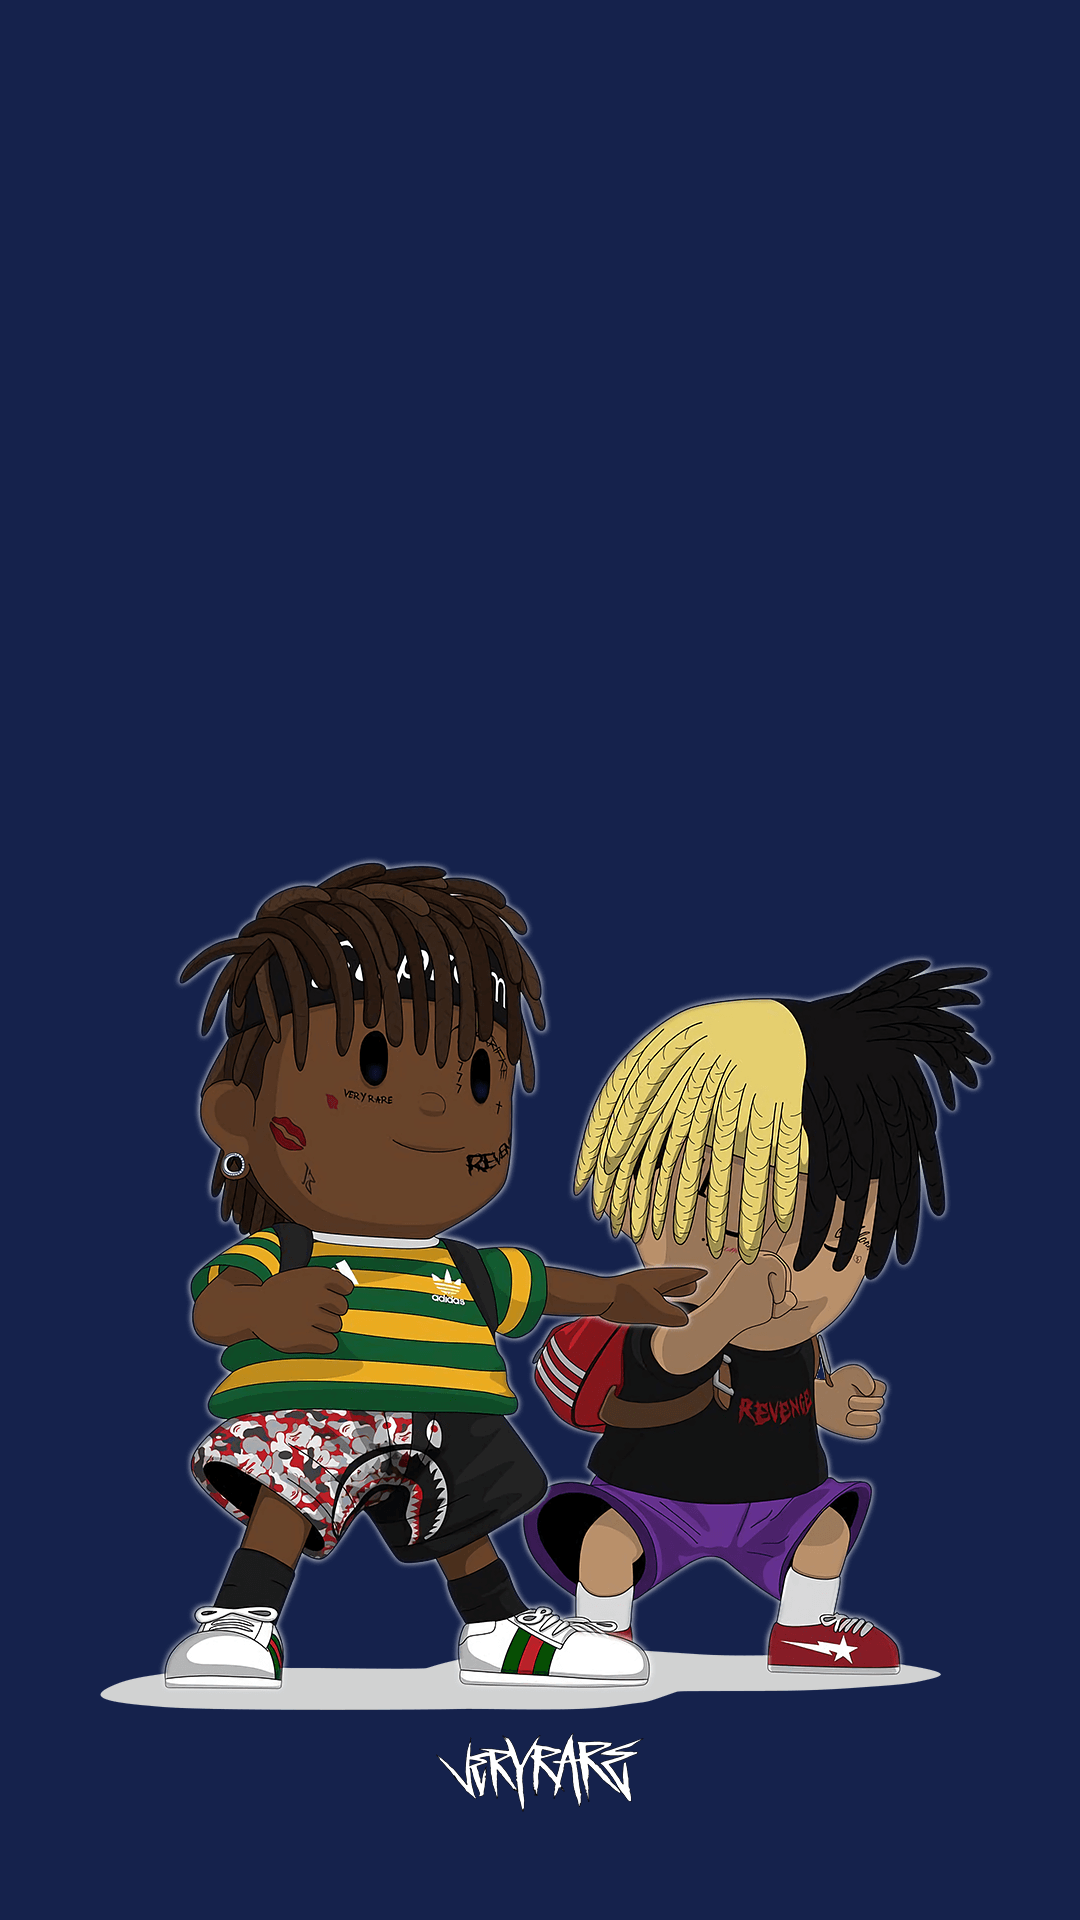 Download cool juice wrld wallpaper for free, use for mobile and desktop. XXXTentacion And Juice Wrld Anime Wallpapers - Wallpaper Cave